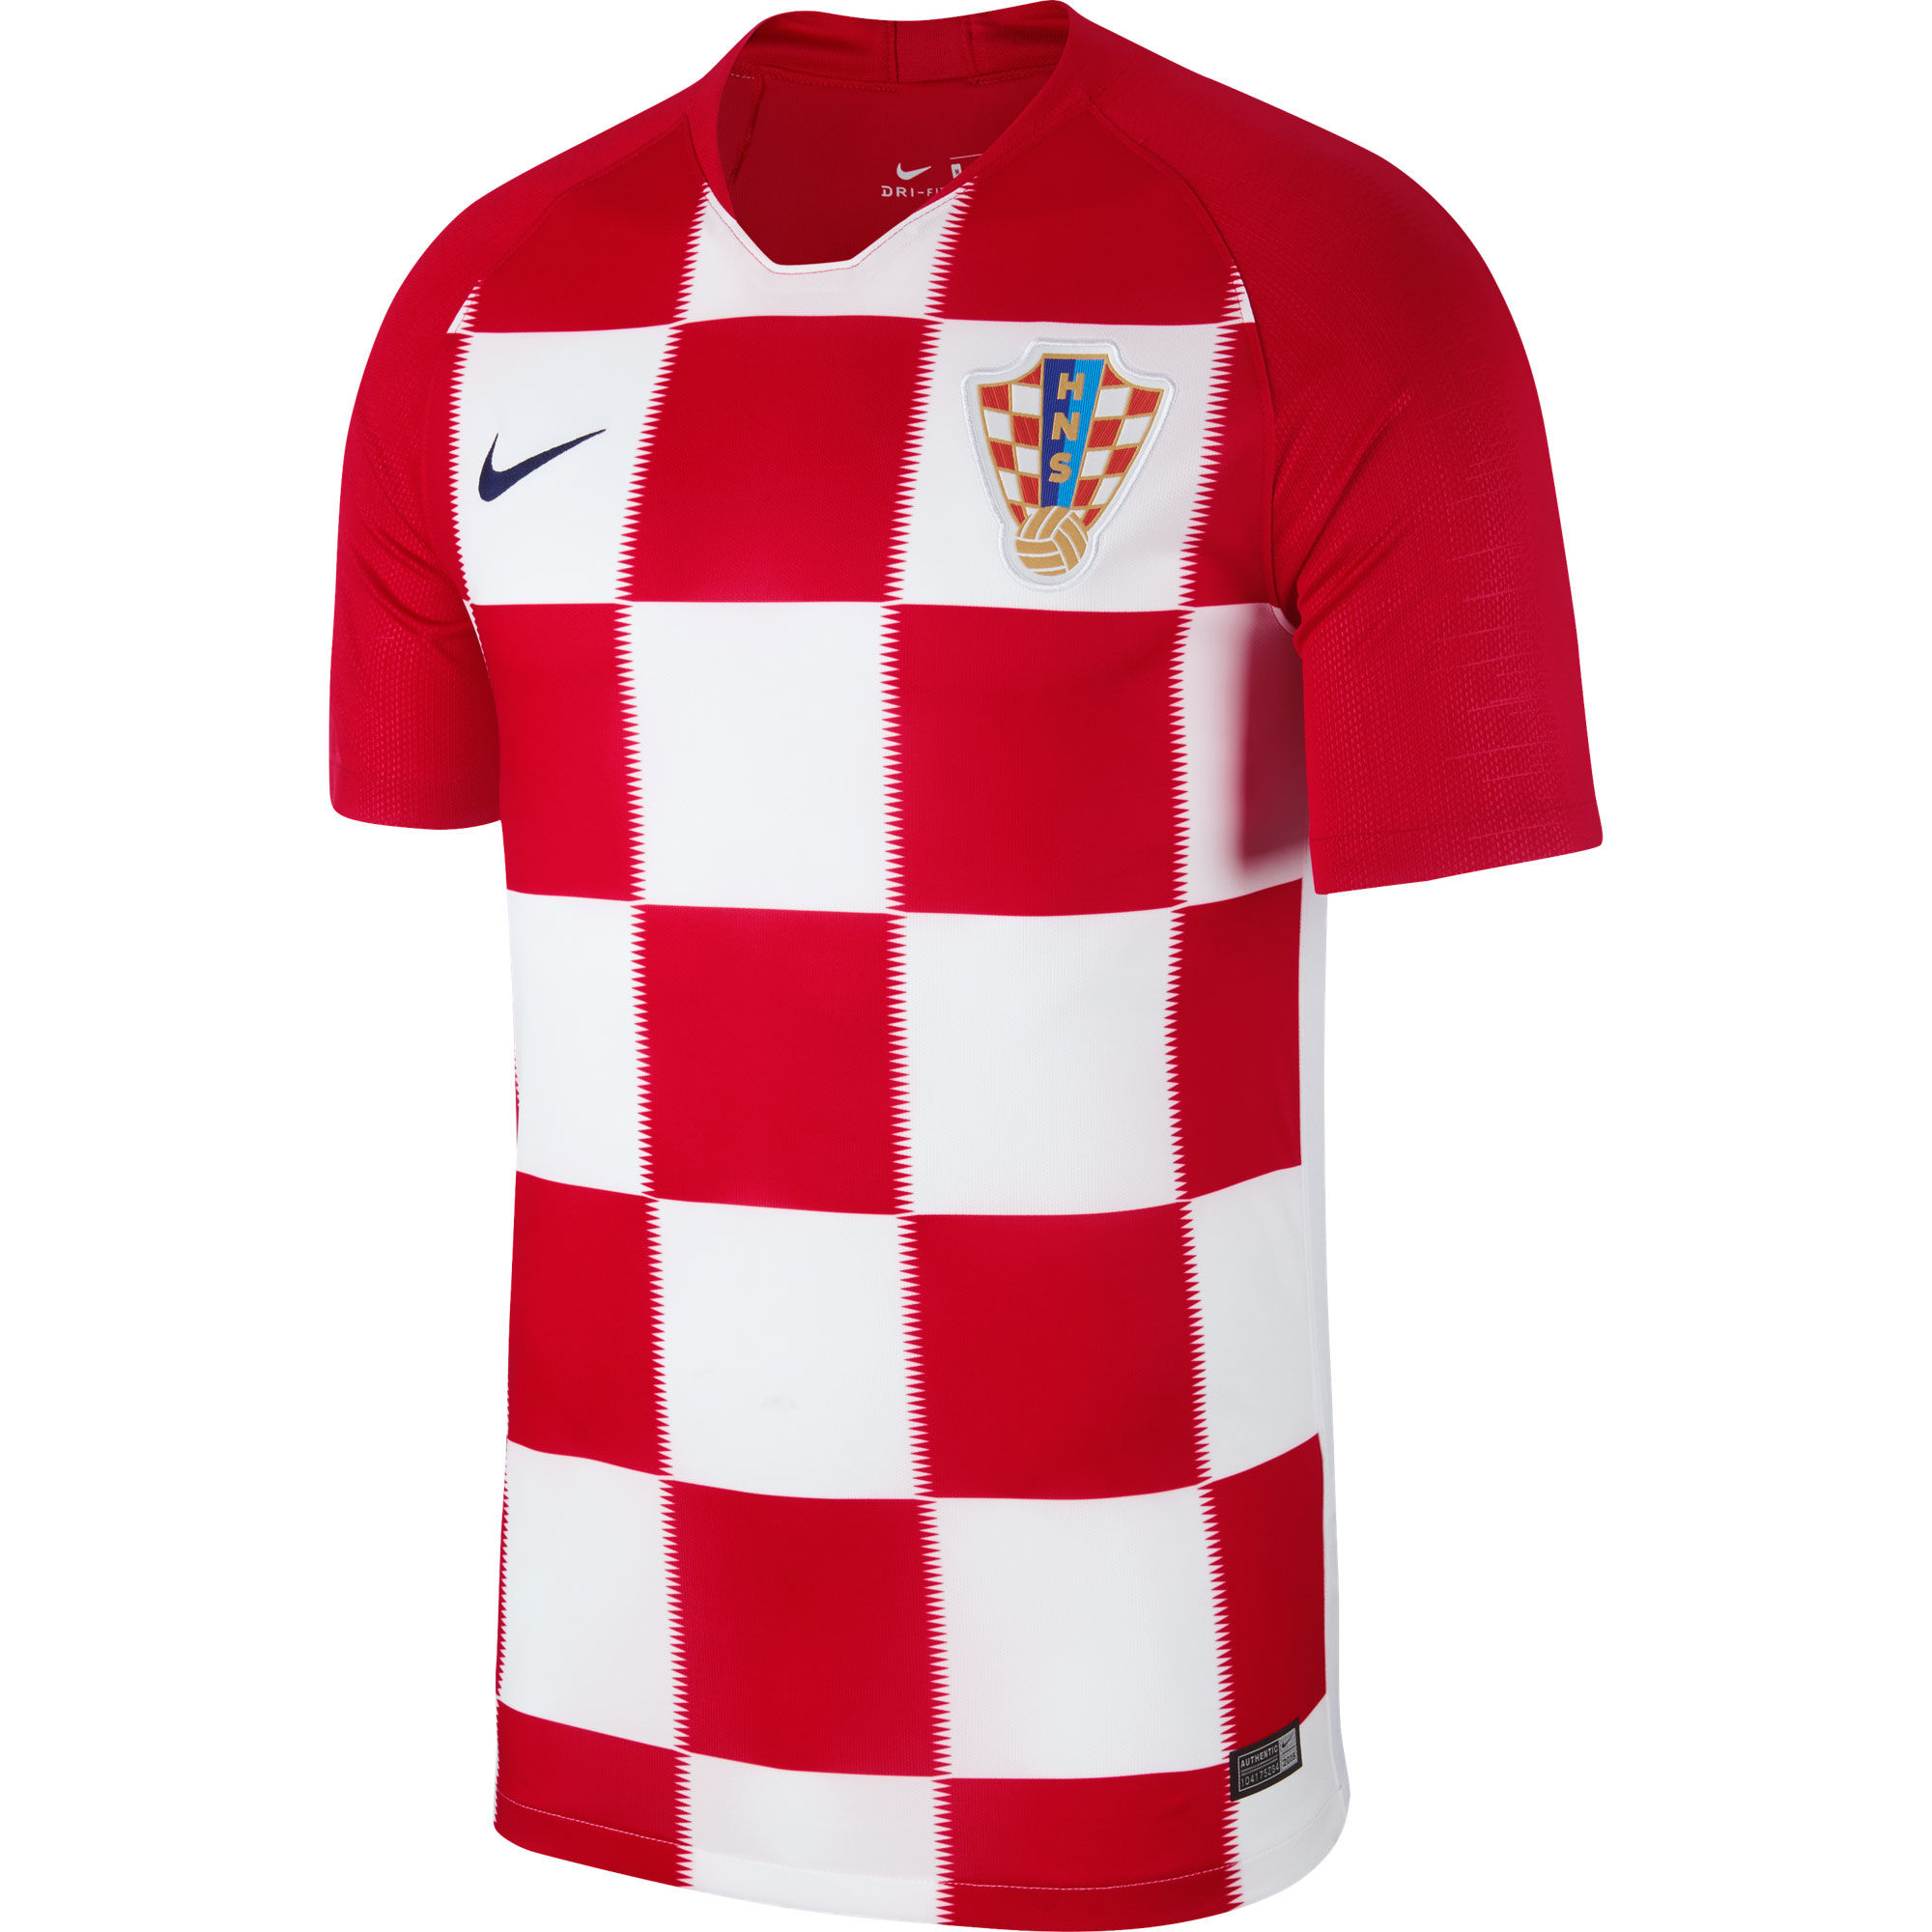 36a54700e Croatia Football Kits